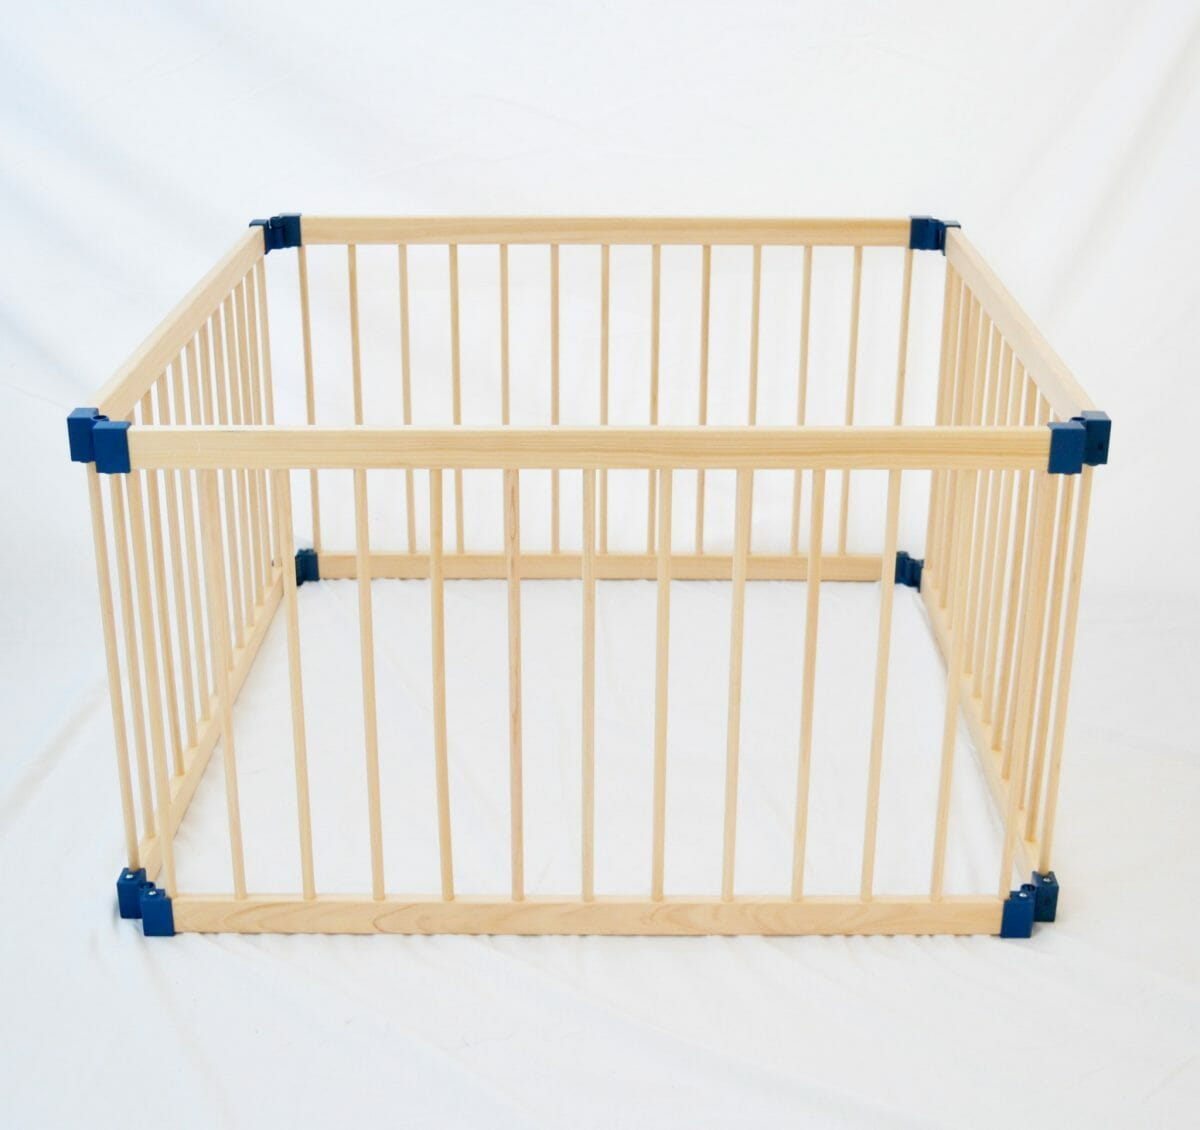 Kiddy Cots 4 Panel Wooden Playpen Link 100 4